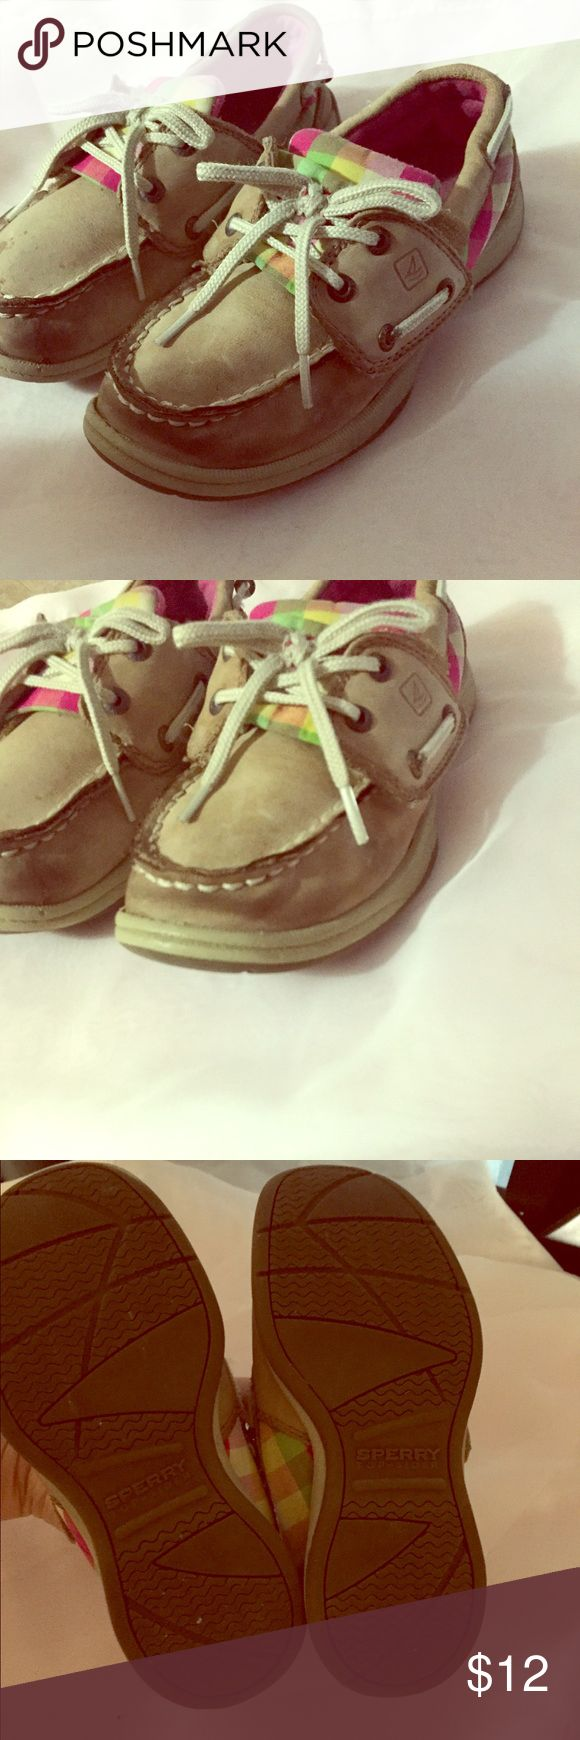 Girls sperry's 🌸 size 11 Girls sperry's size 11, great for the spring and summer🌷 Sperry Shoes Sneakers